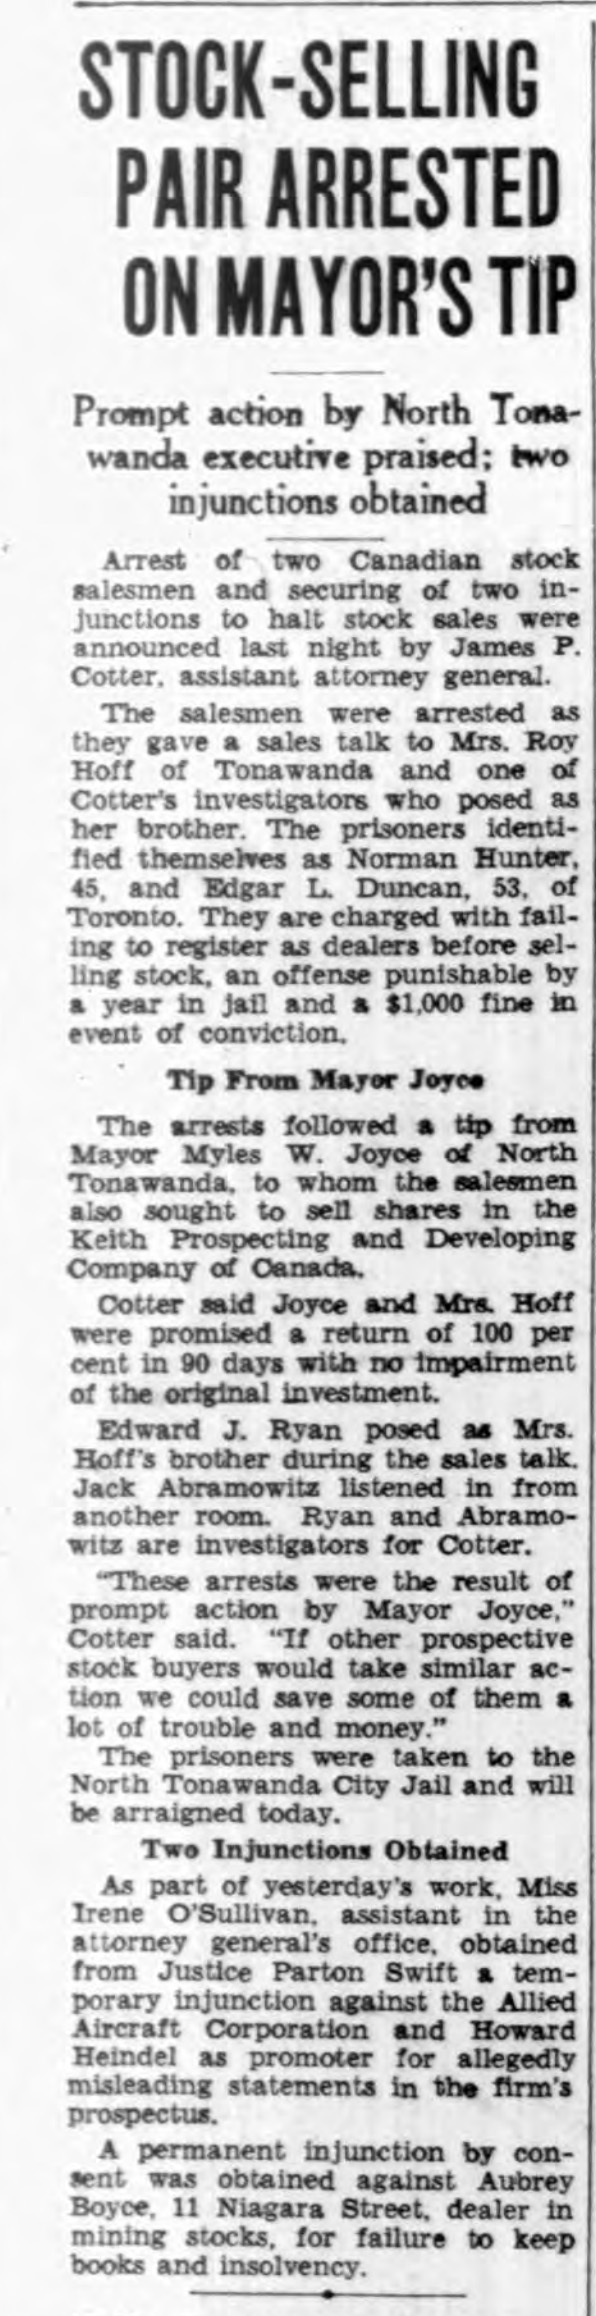 Stock-selling pair arrested on mayor's tip, article (Buffalo Courier-Express, 1939-03-01).jpg